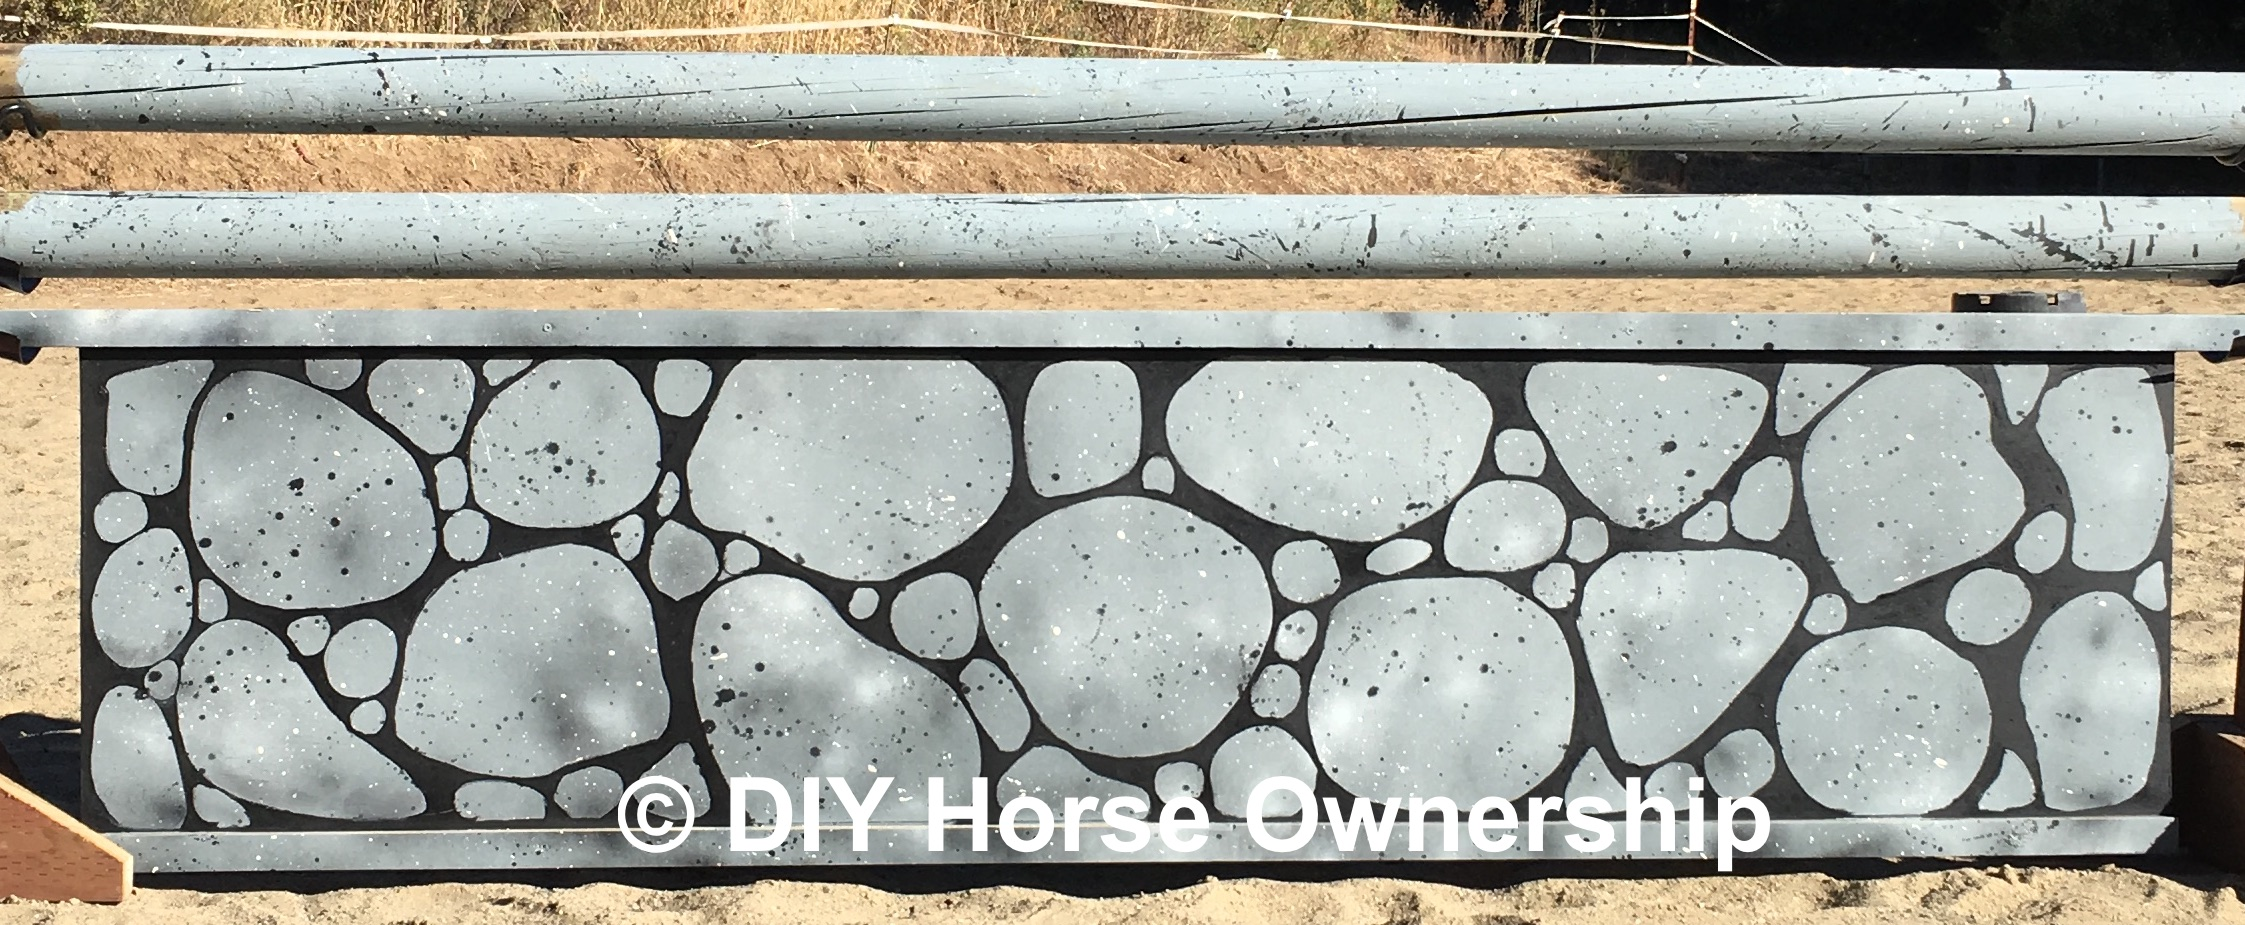 DIY: How to make horse jumps panel jump stone wall rainbow jump paint